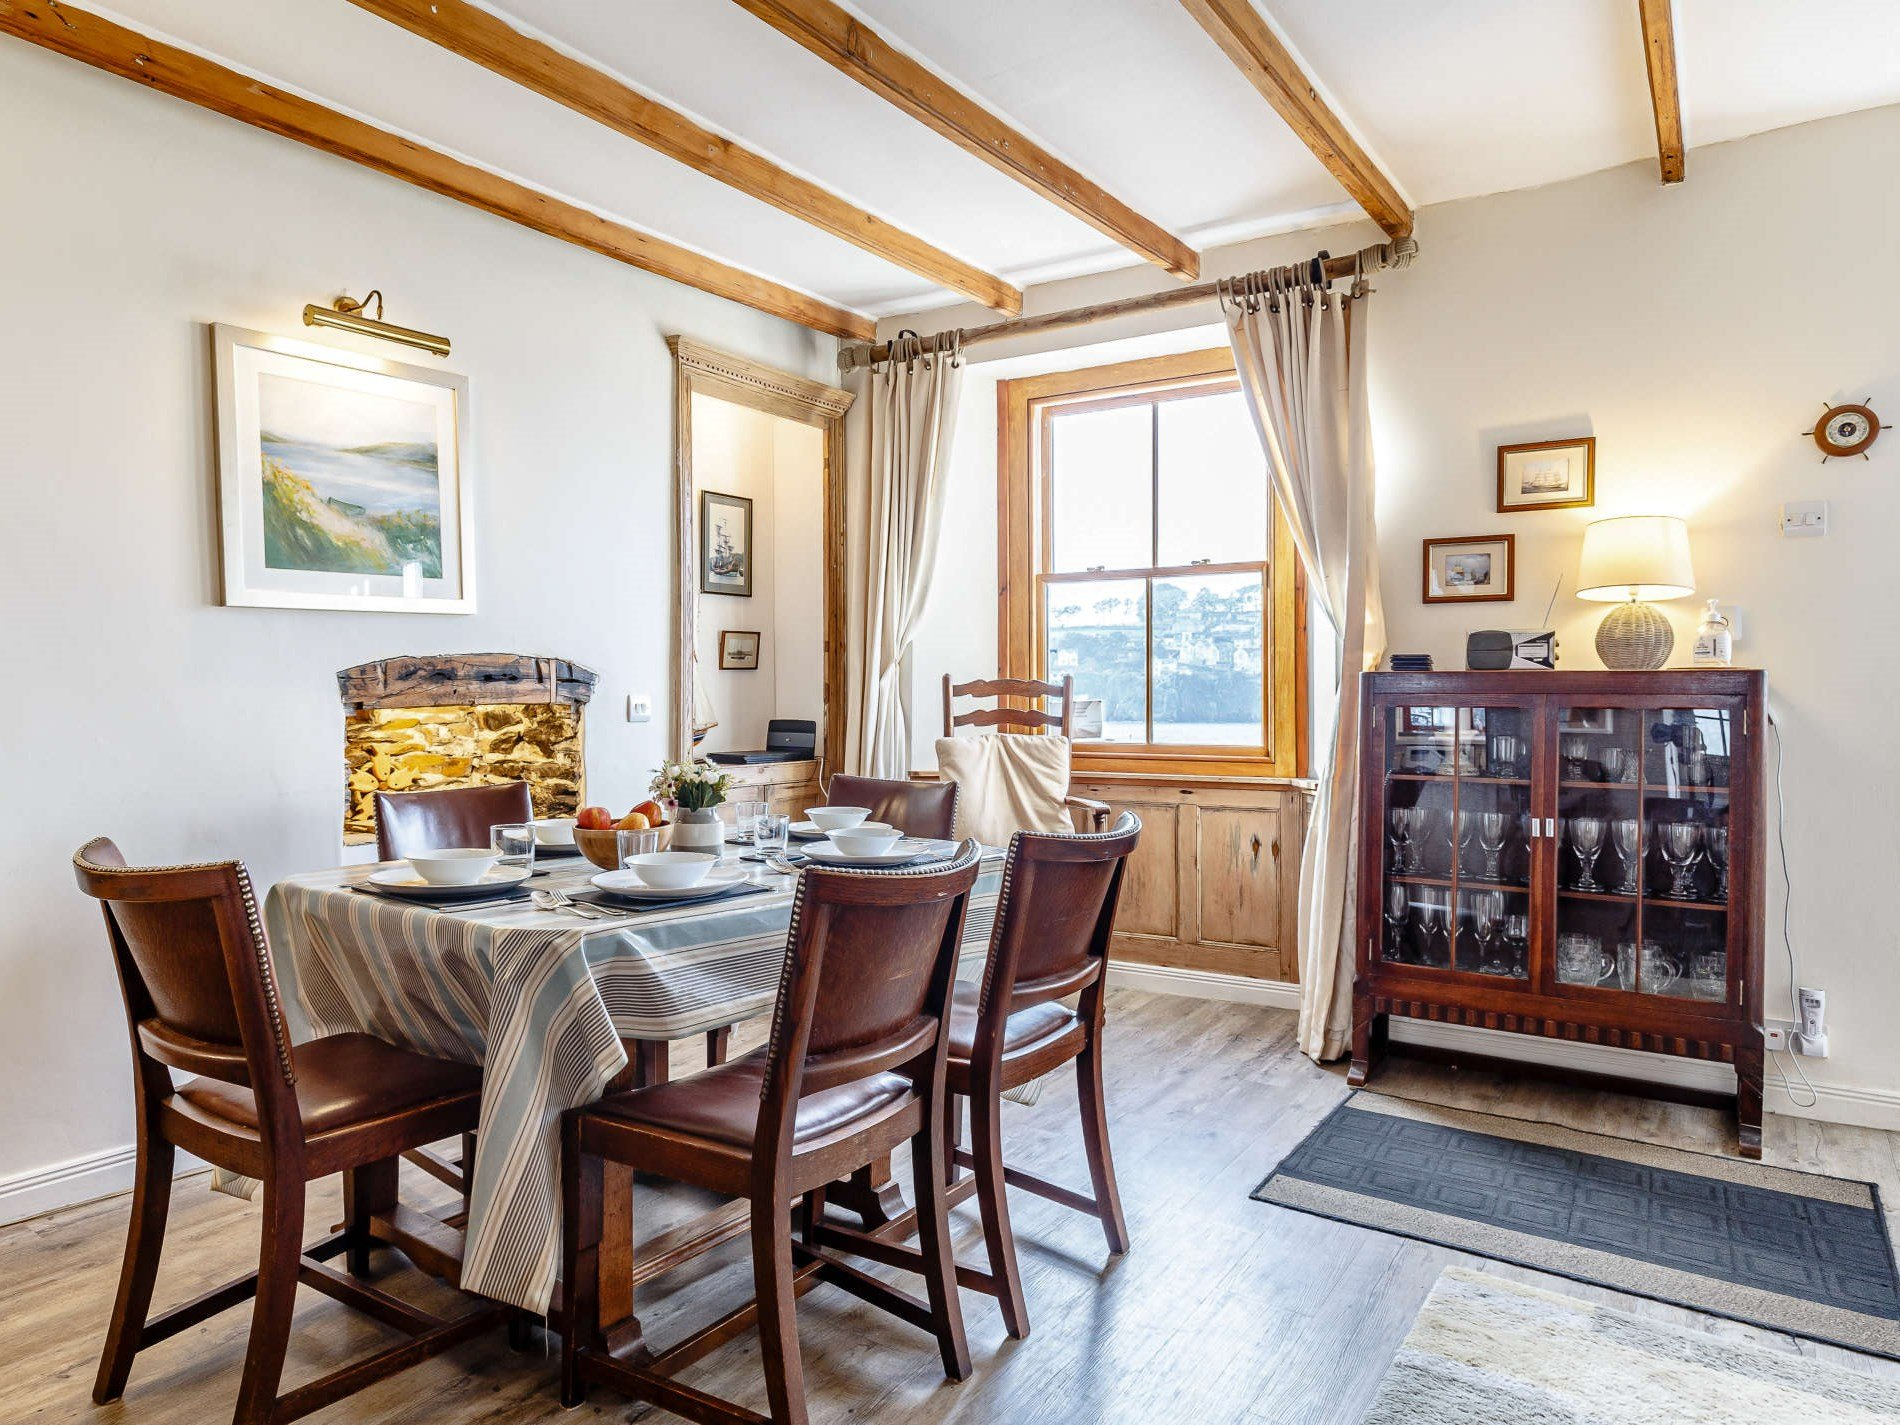 4 Bedroom Cottage in South Cornwall, Cornwall